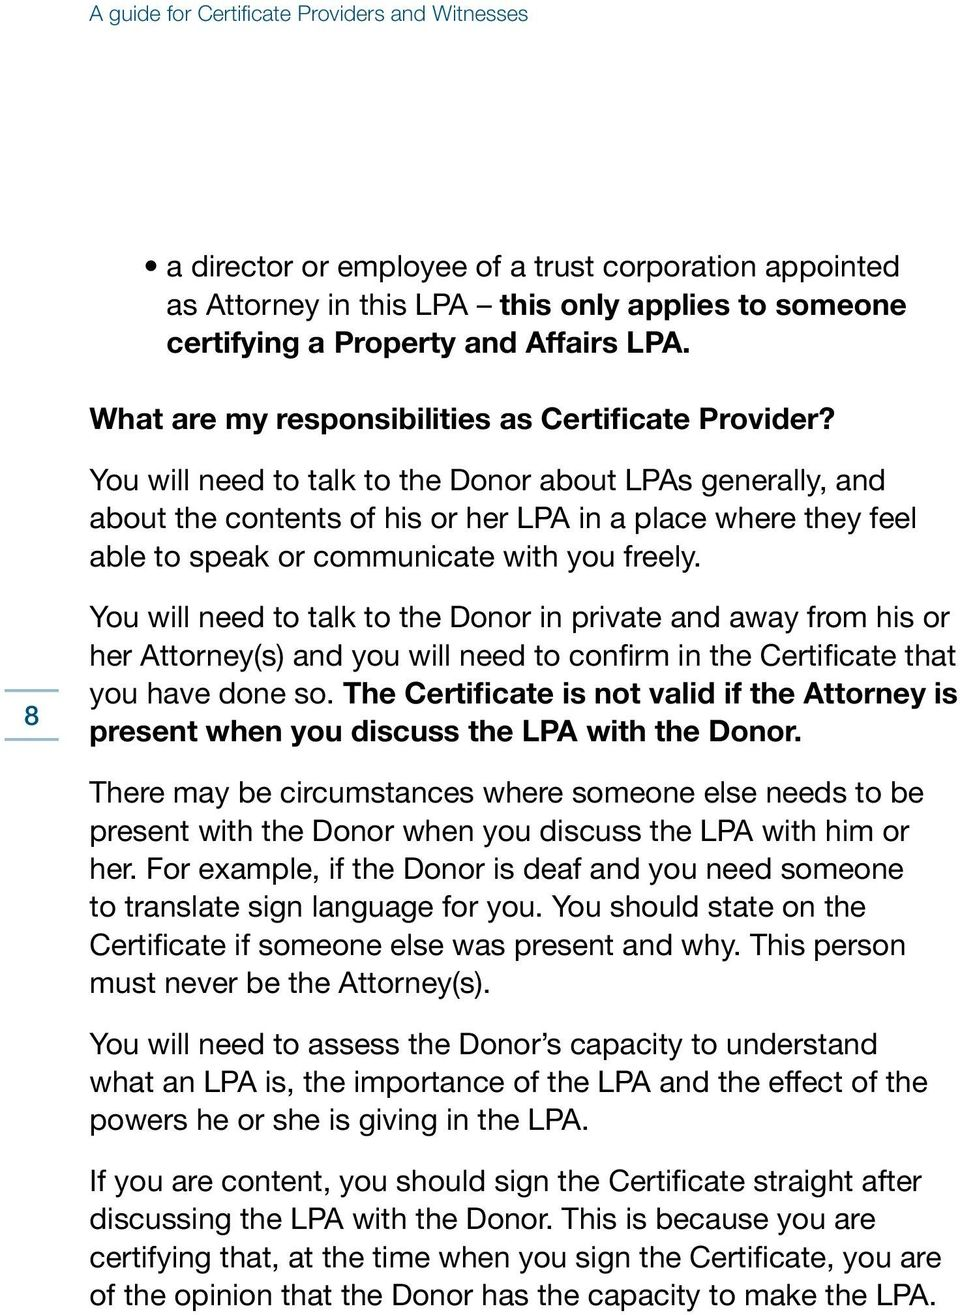 You will need to talk to the Donor about LPAs generally, and about the contents of his or her LPA in a place where they feel able to speak or communicate with you freely.